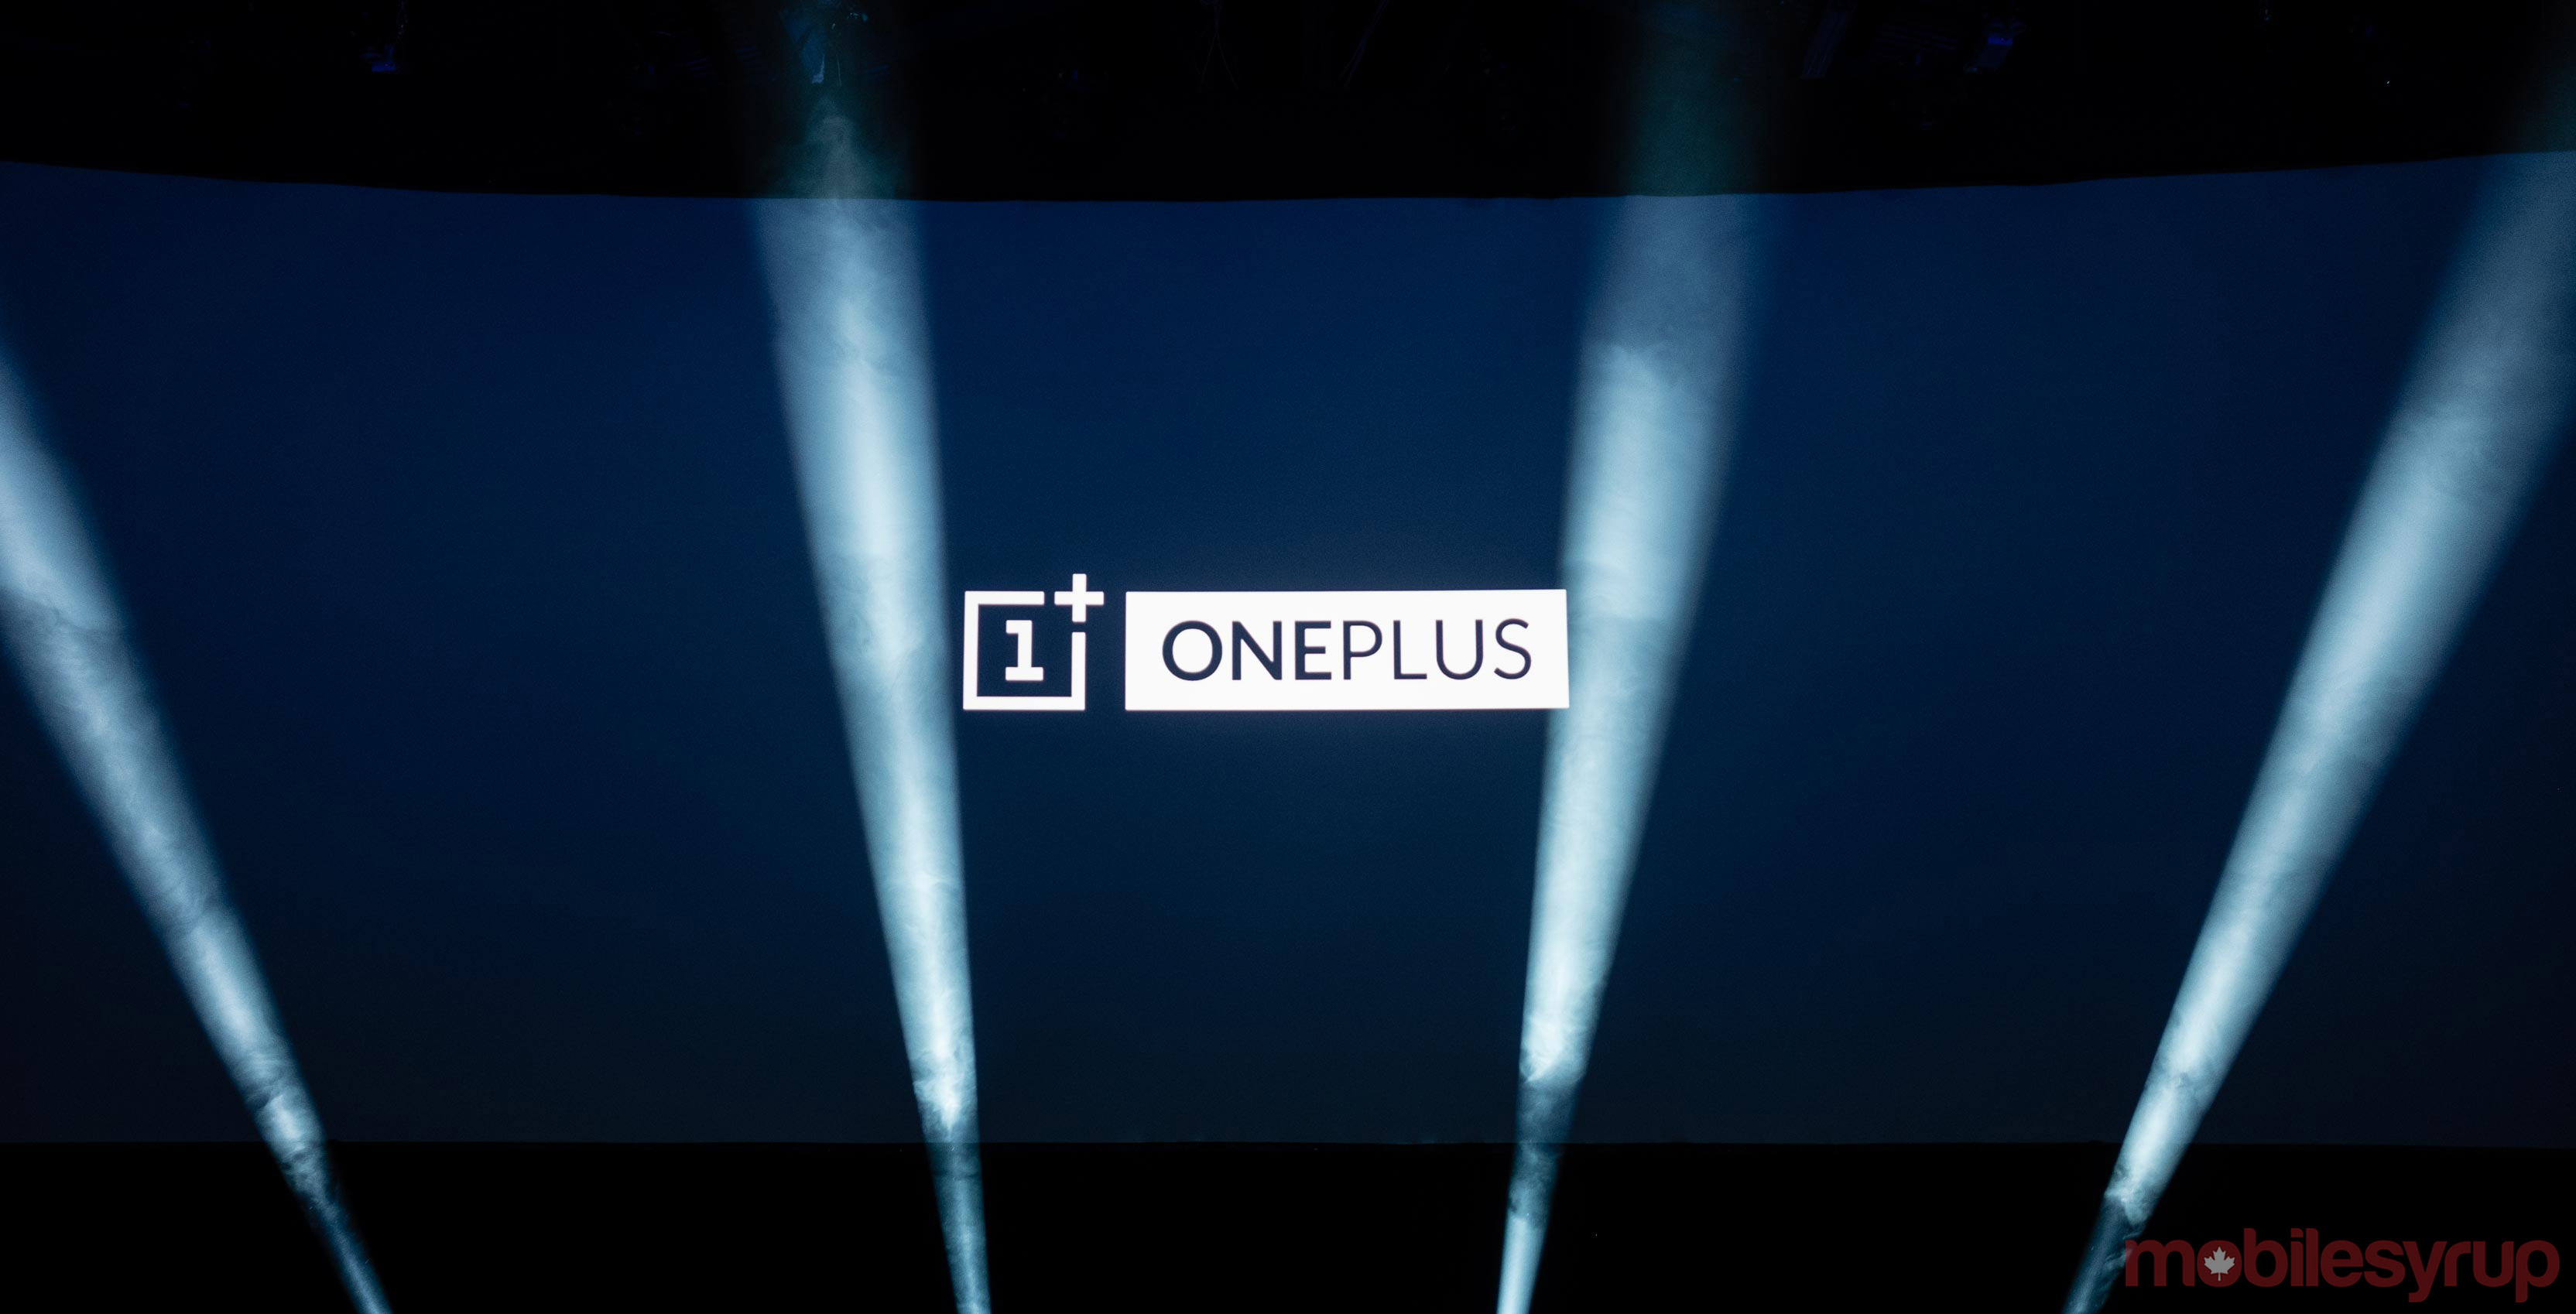 OnePlus 7 does not include USB-C headphone jack adapters